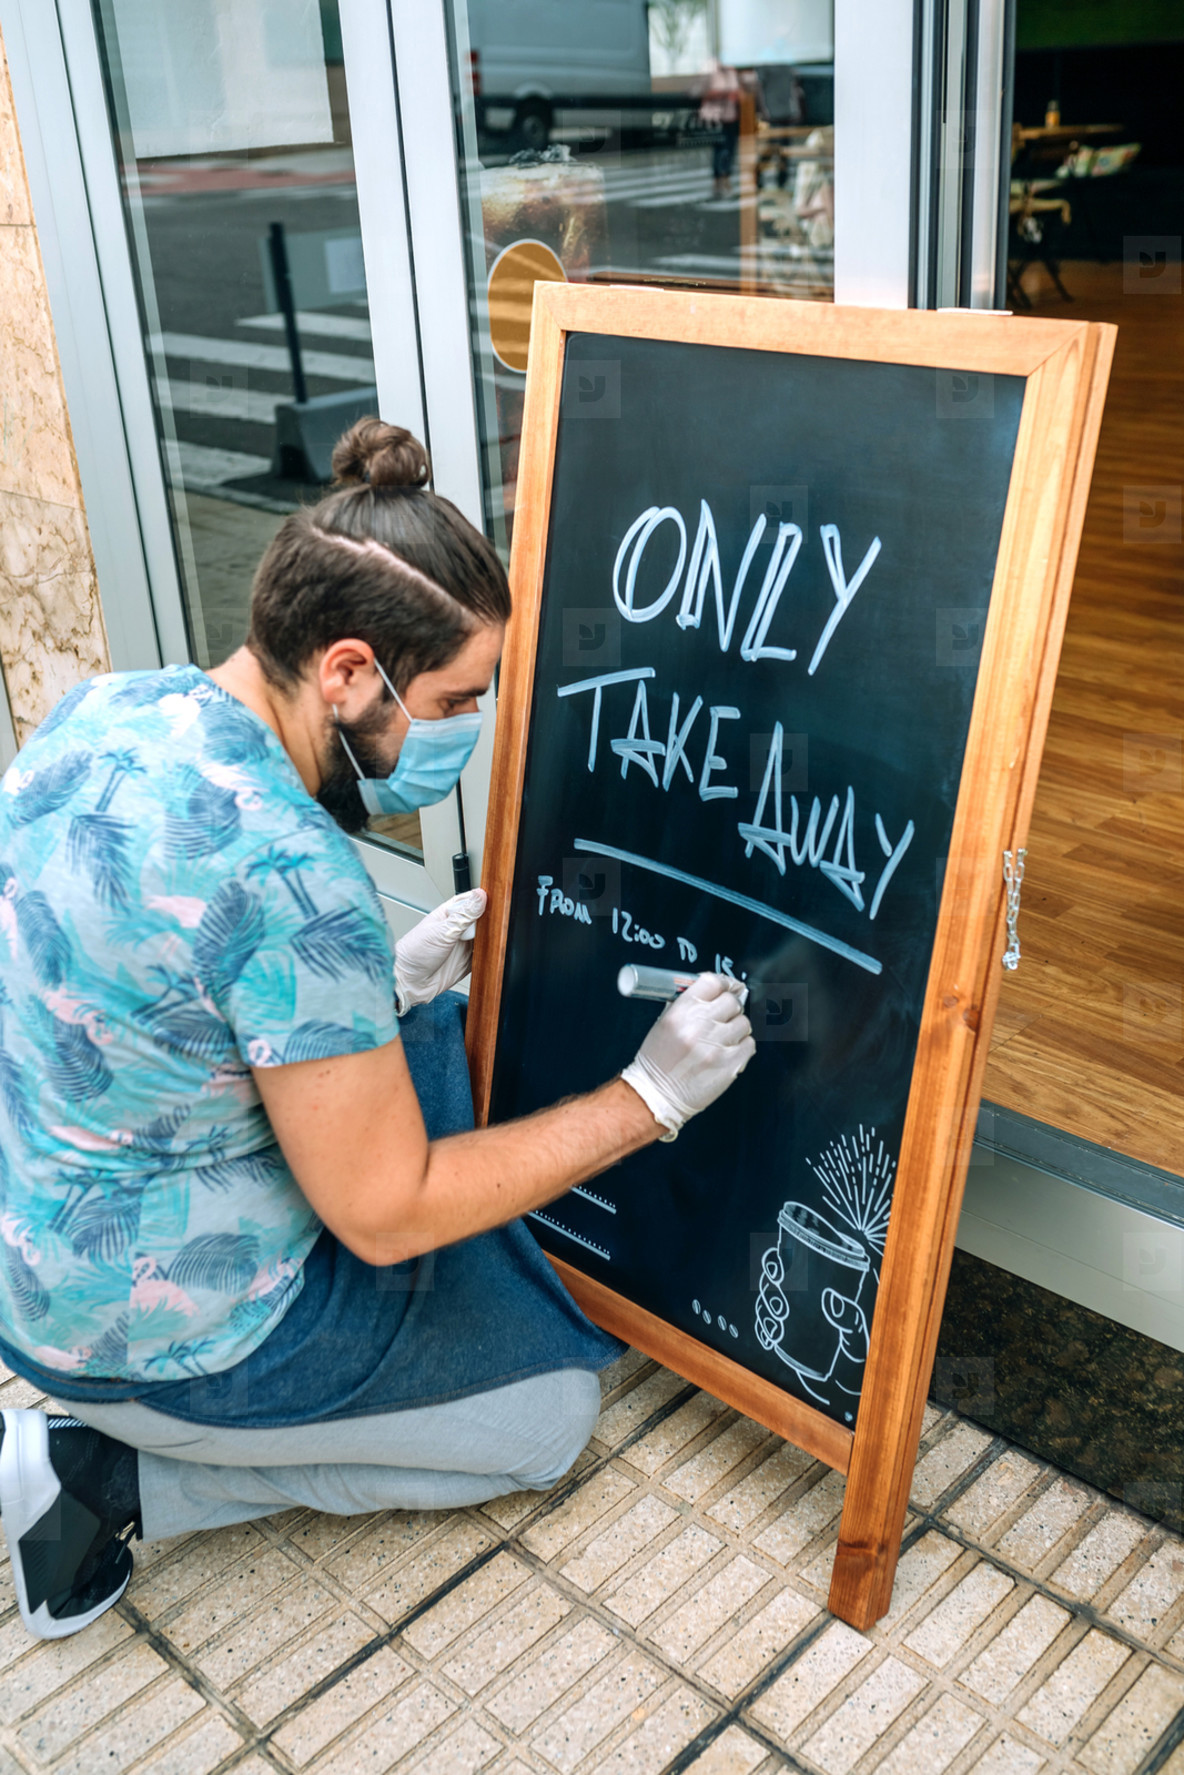 Restaurant owner writing on a blackboard